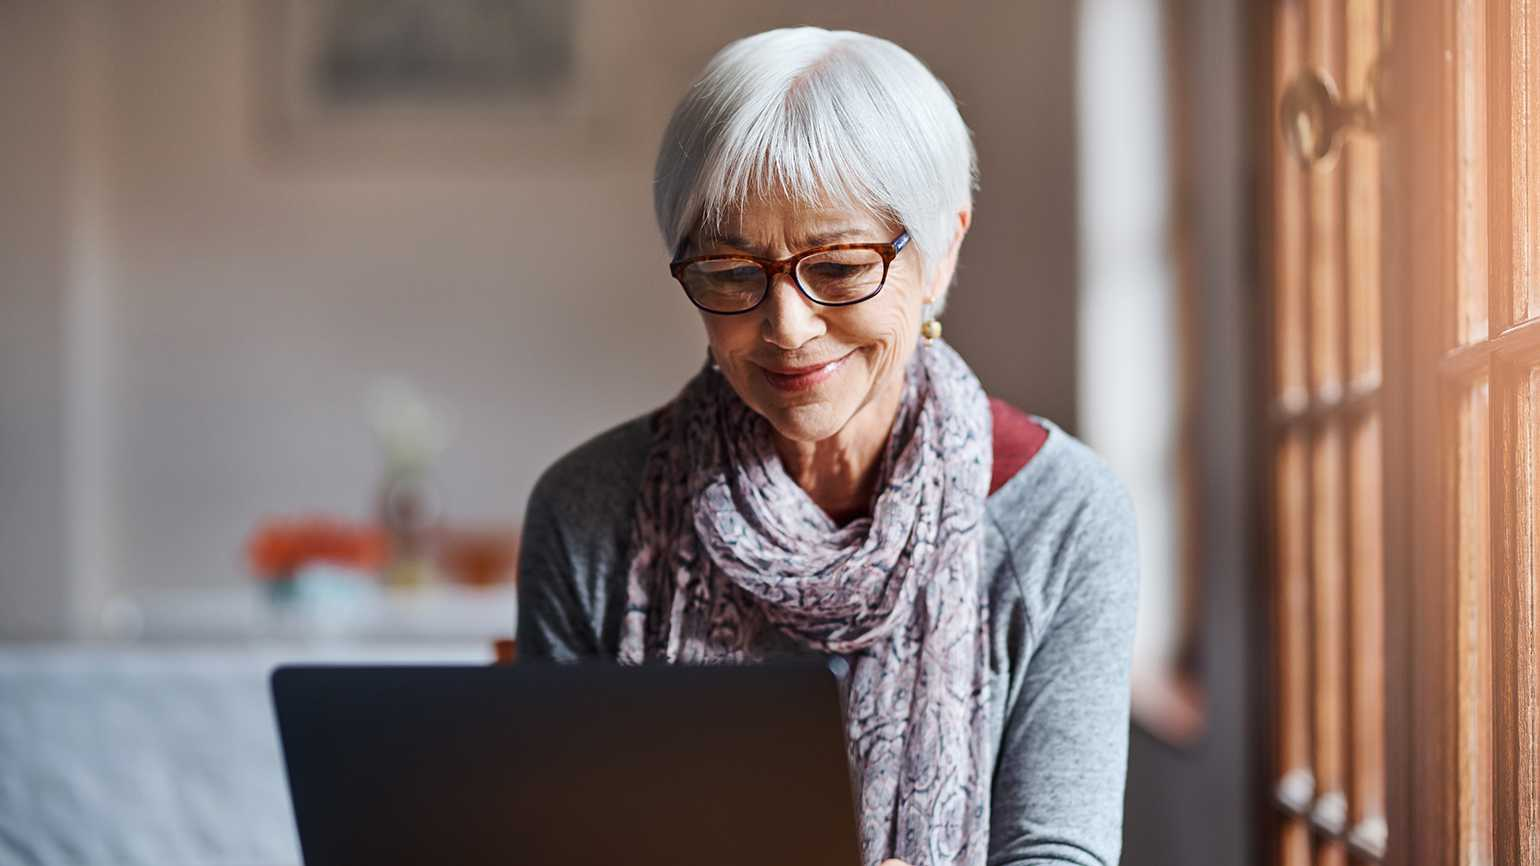 These webinars and videos offer tips to improve the lives of caregivers and their loved ones.